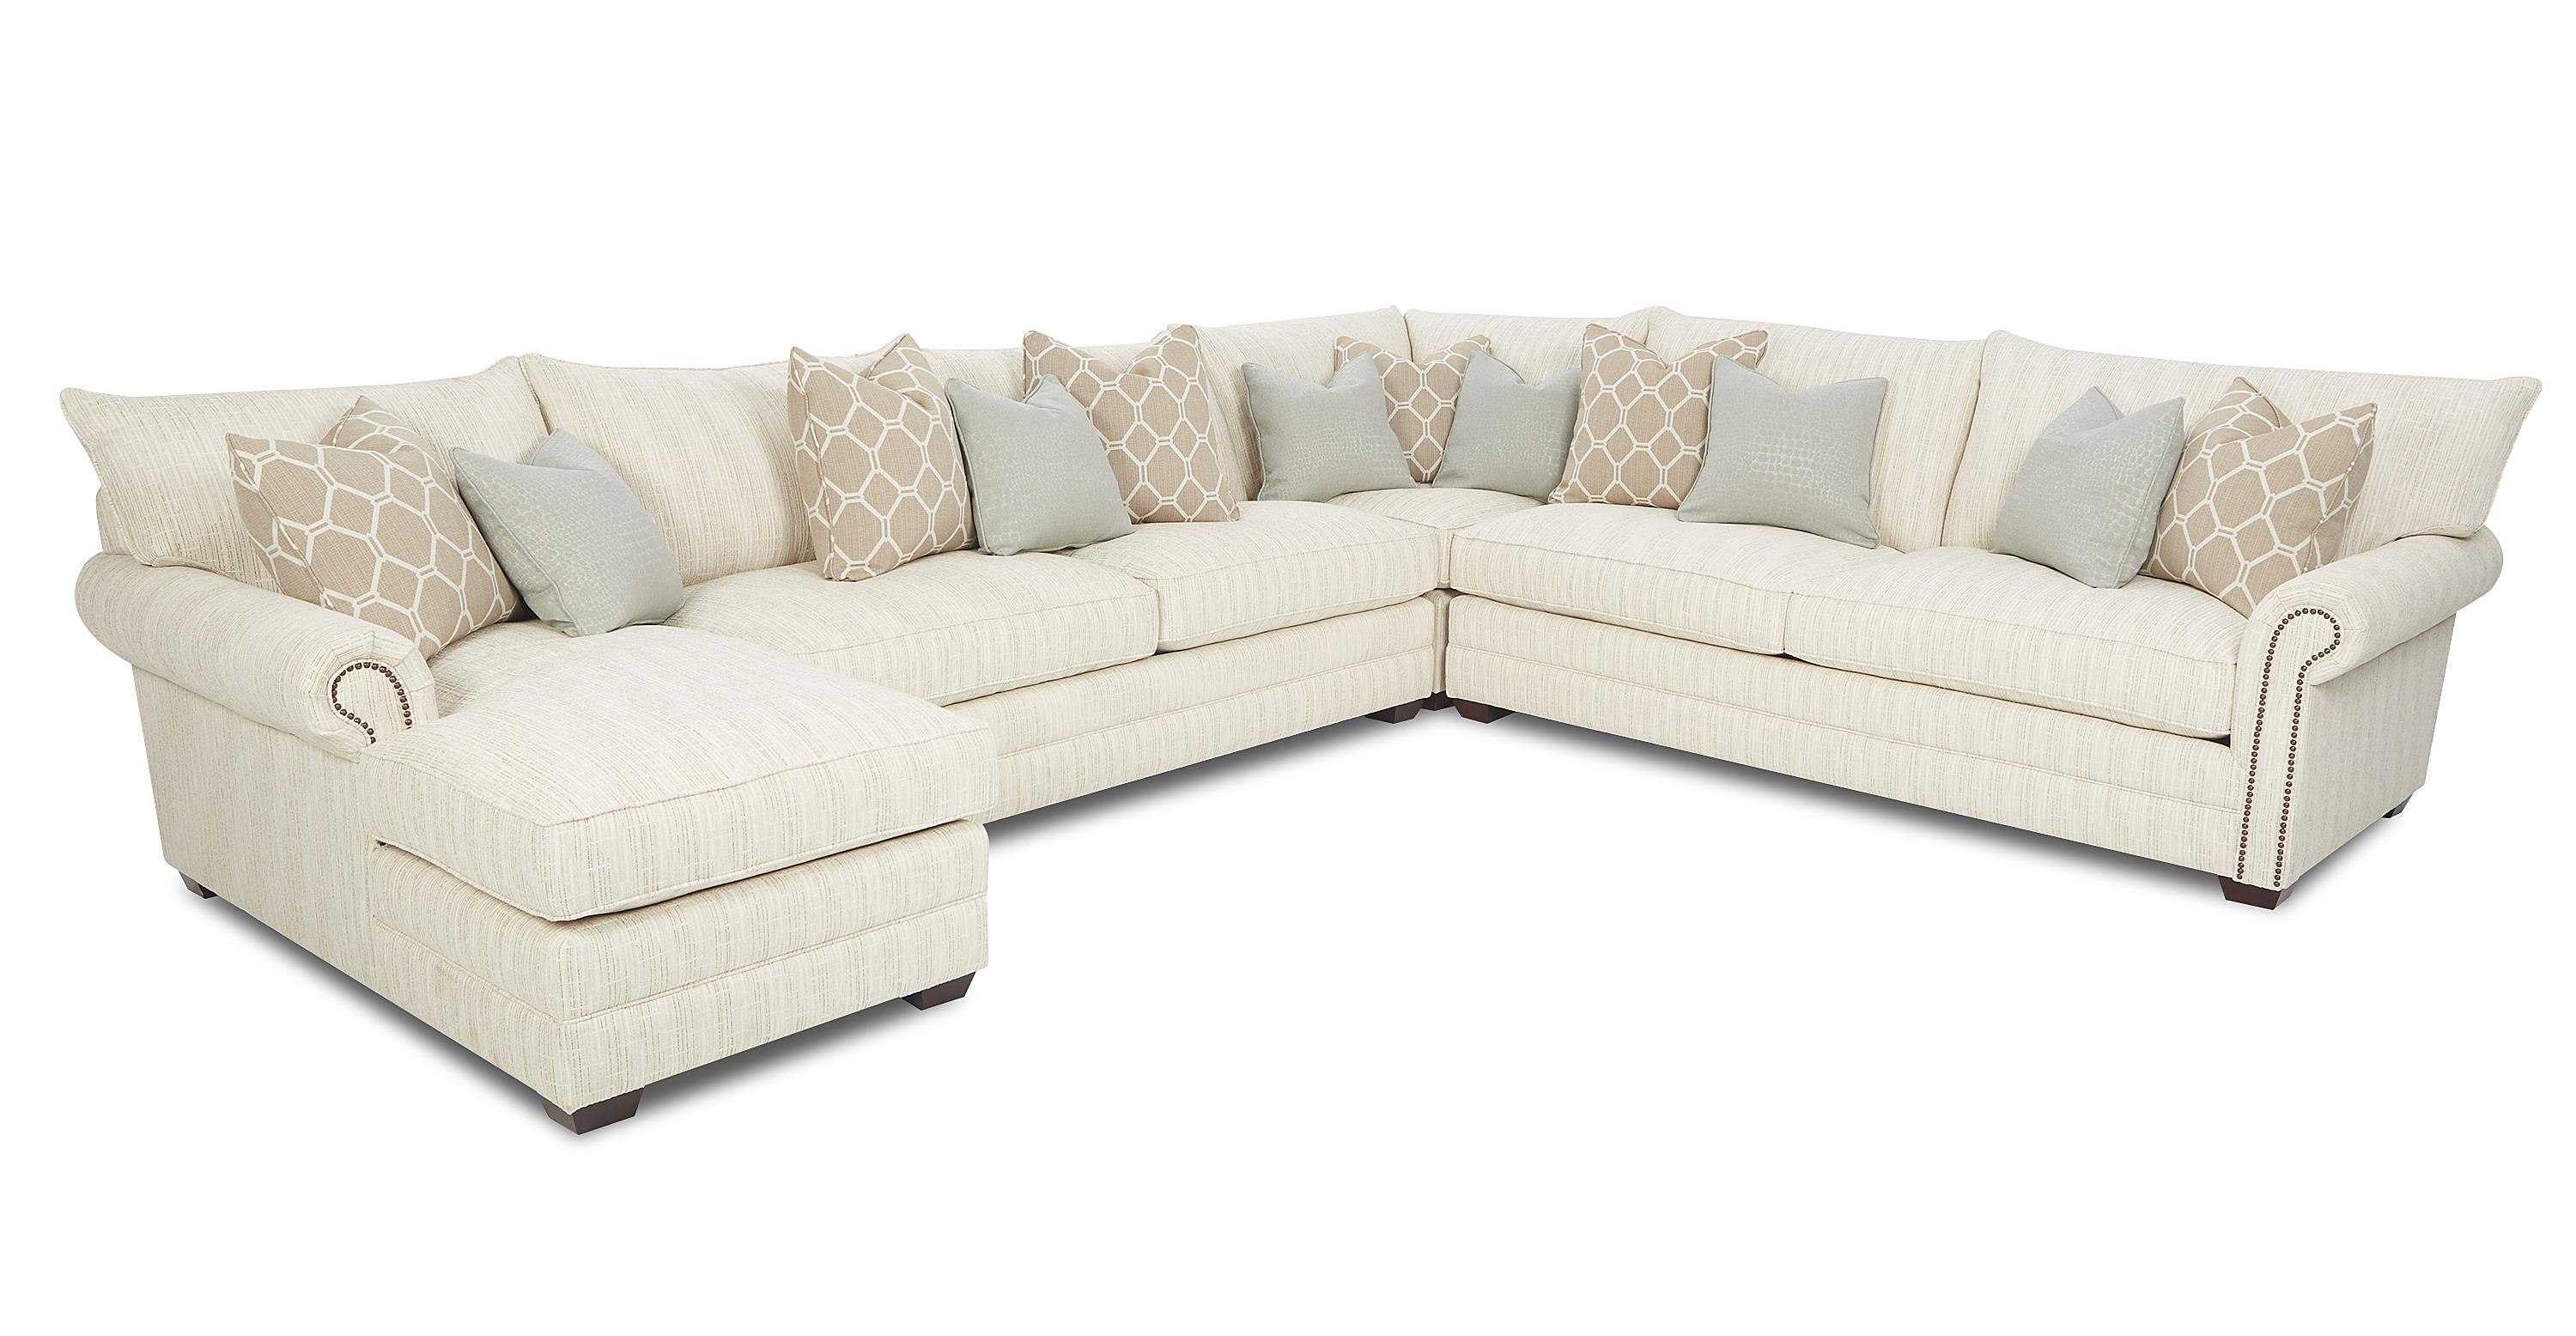 Traditional Sectional Sofa with Nailhead Trim and Chaise Lounge by ...